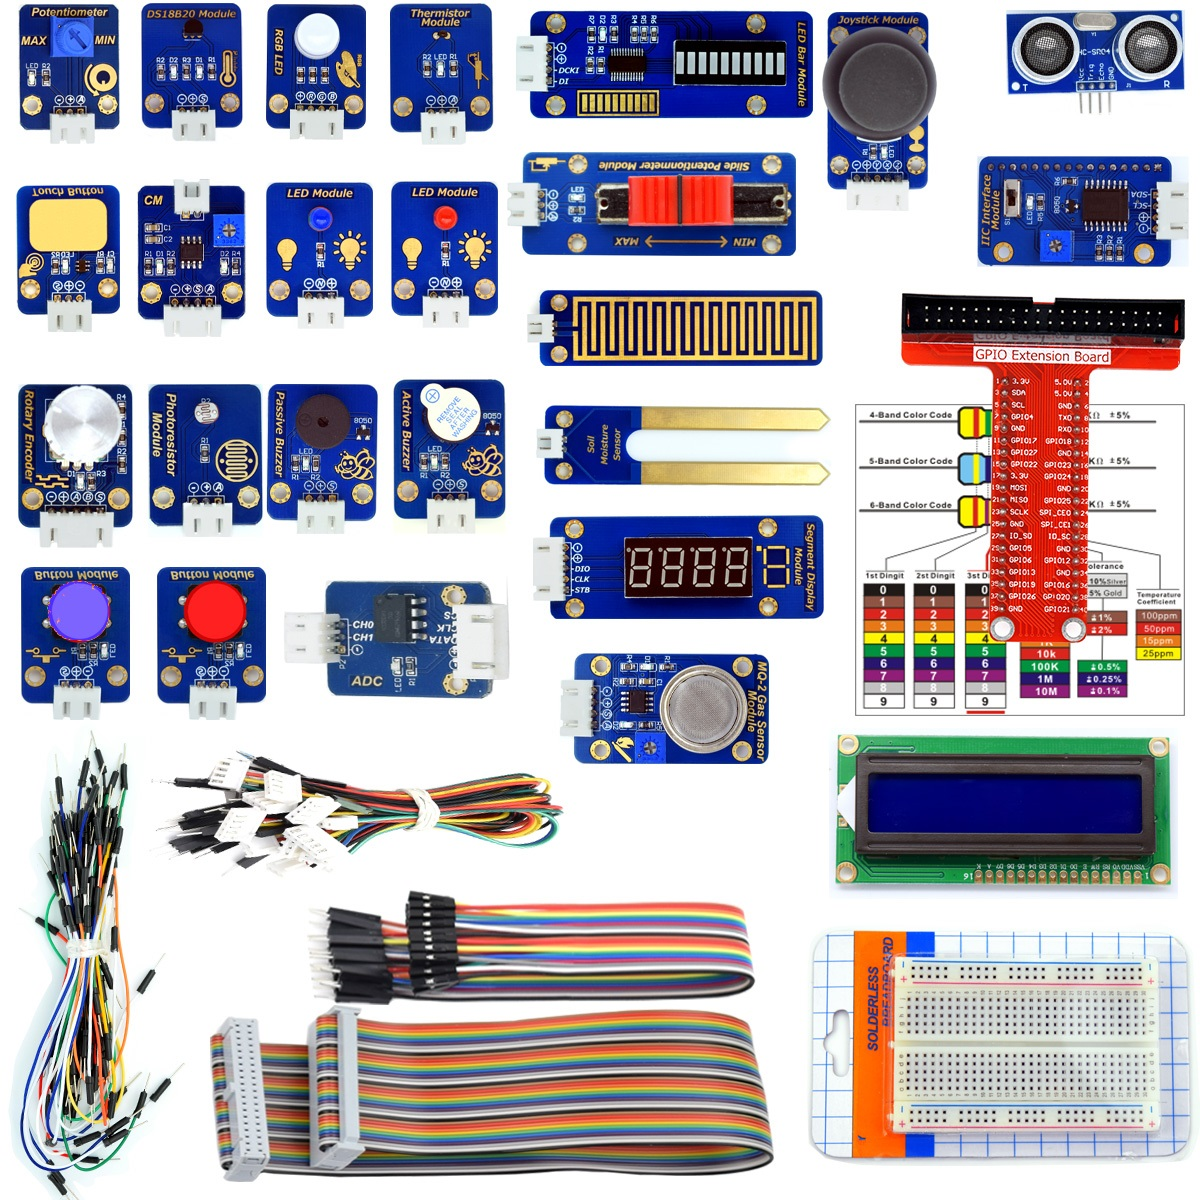 Adeept 24 Modules Sensor Kit for Raspberry Pi 3,2 B/B+, DS18b20, Robot  Projects Starter Kit with Tutorials, C and Python Code, PDF Guidebook